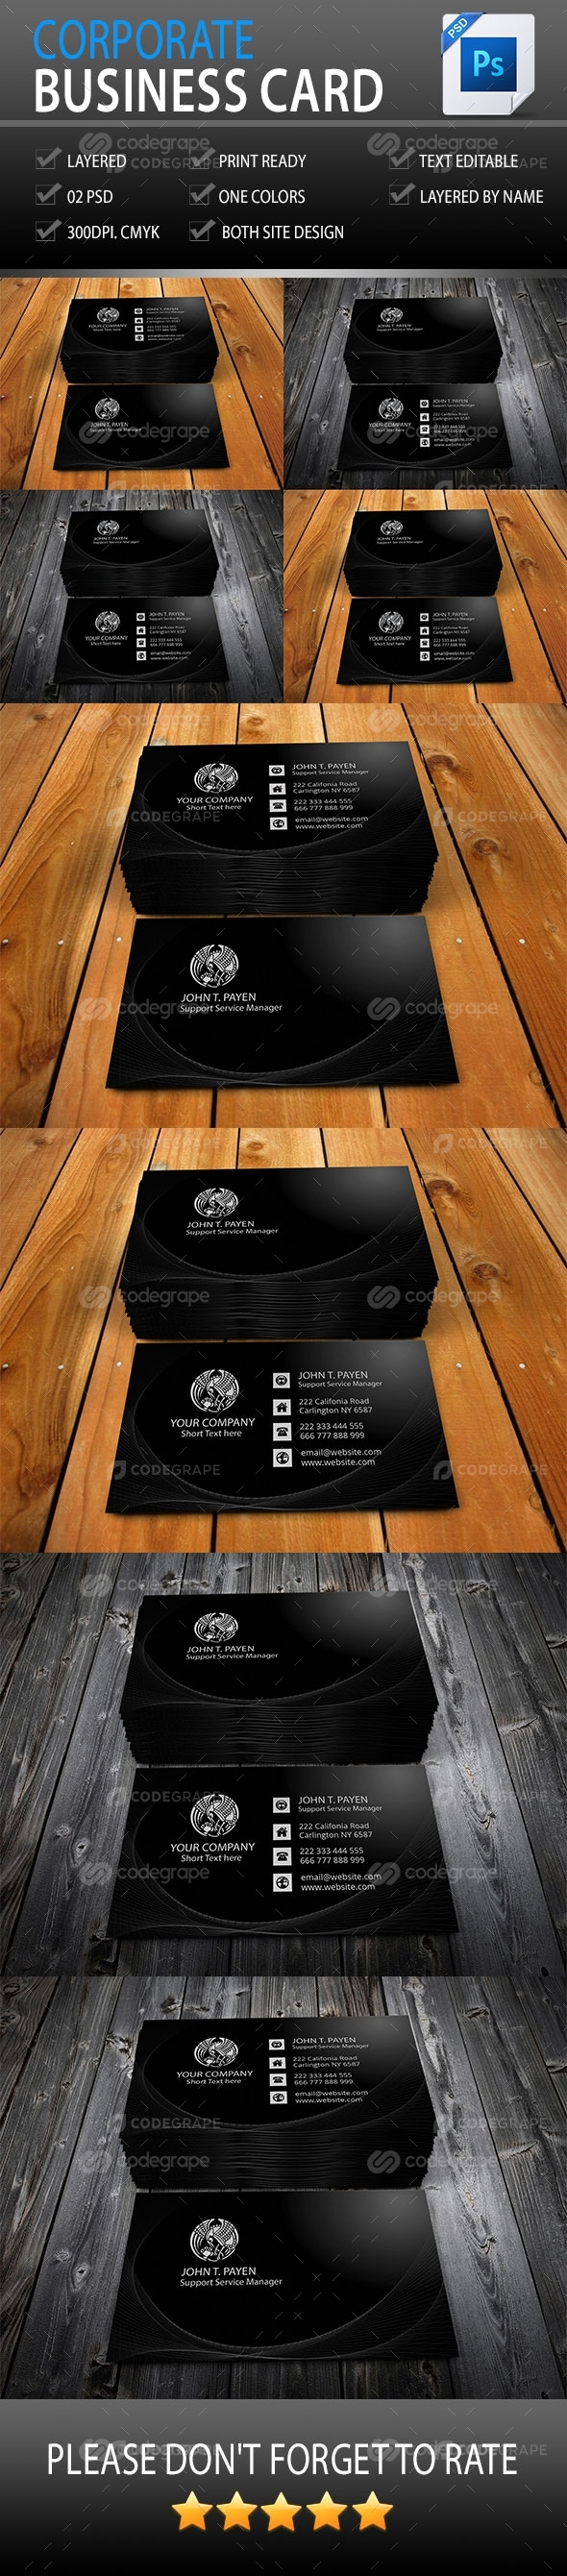 Corporate Business Card Vol-3.0